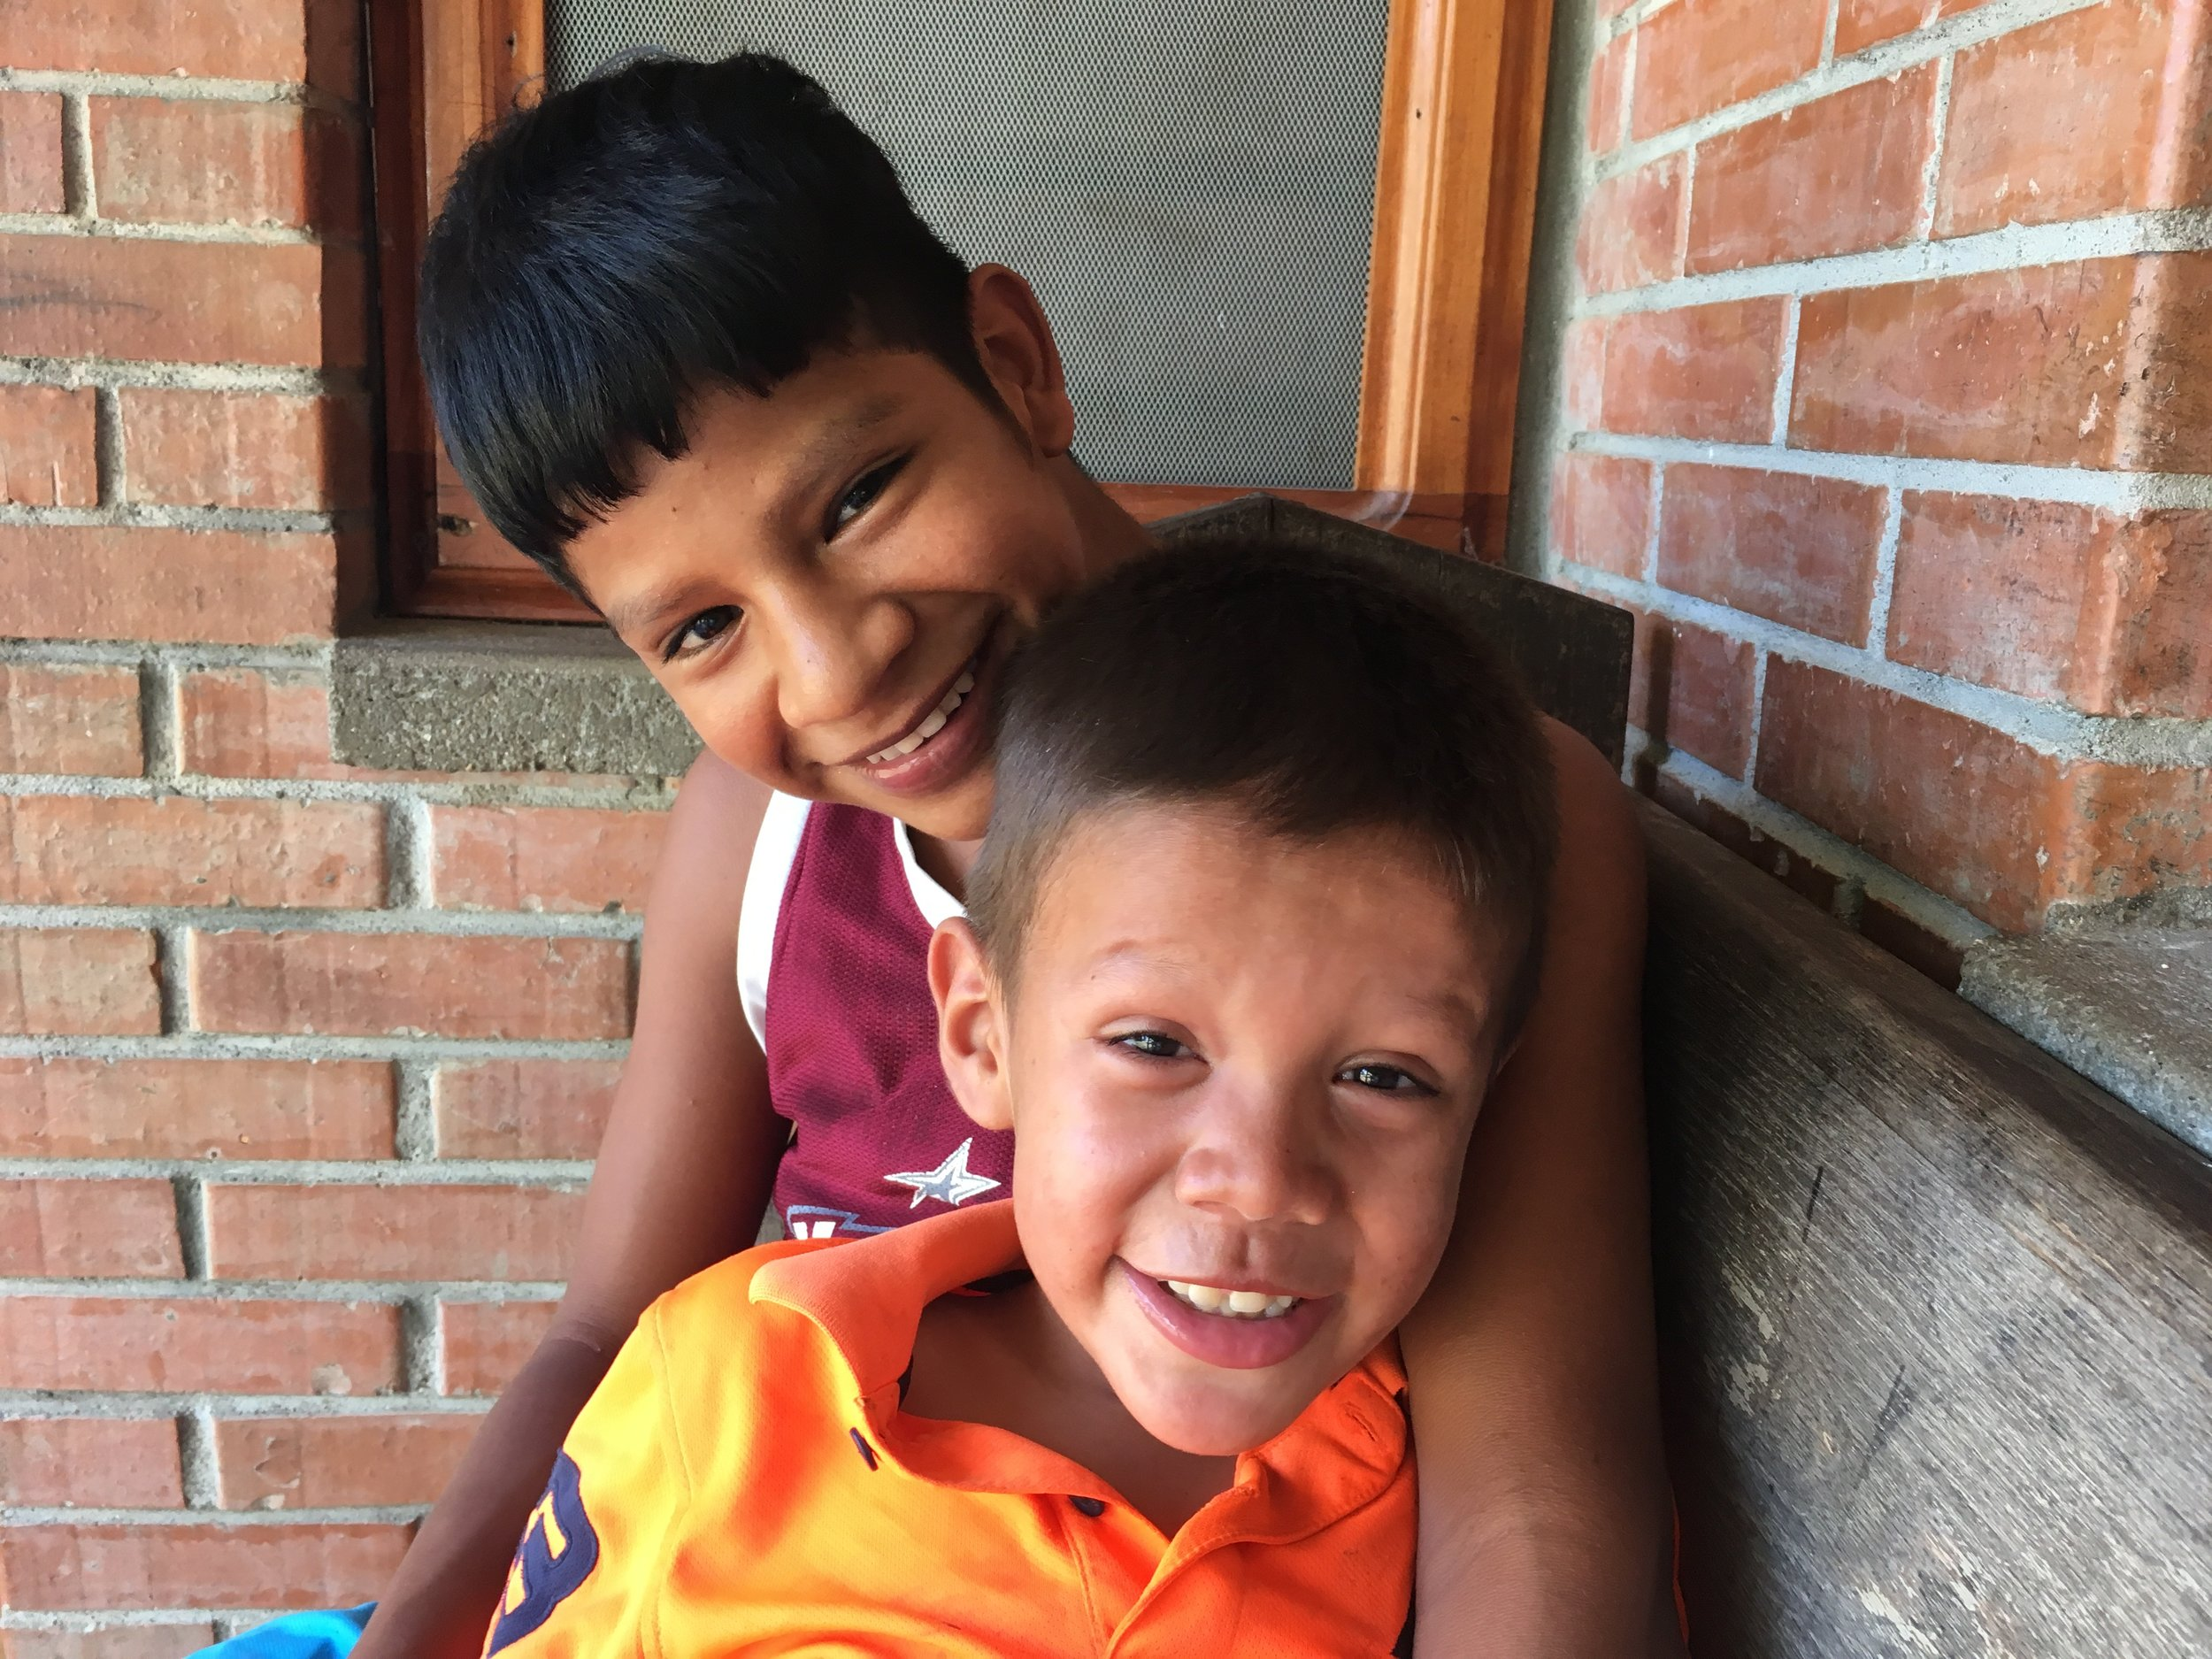 Domingo and one of the older boys he lives with.